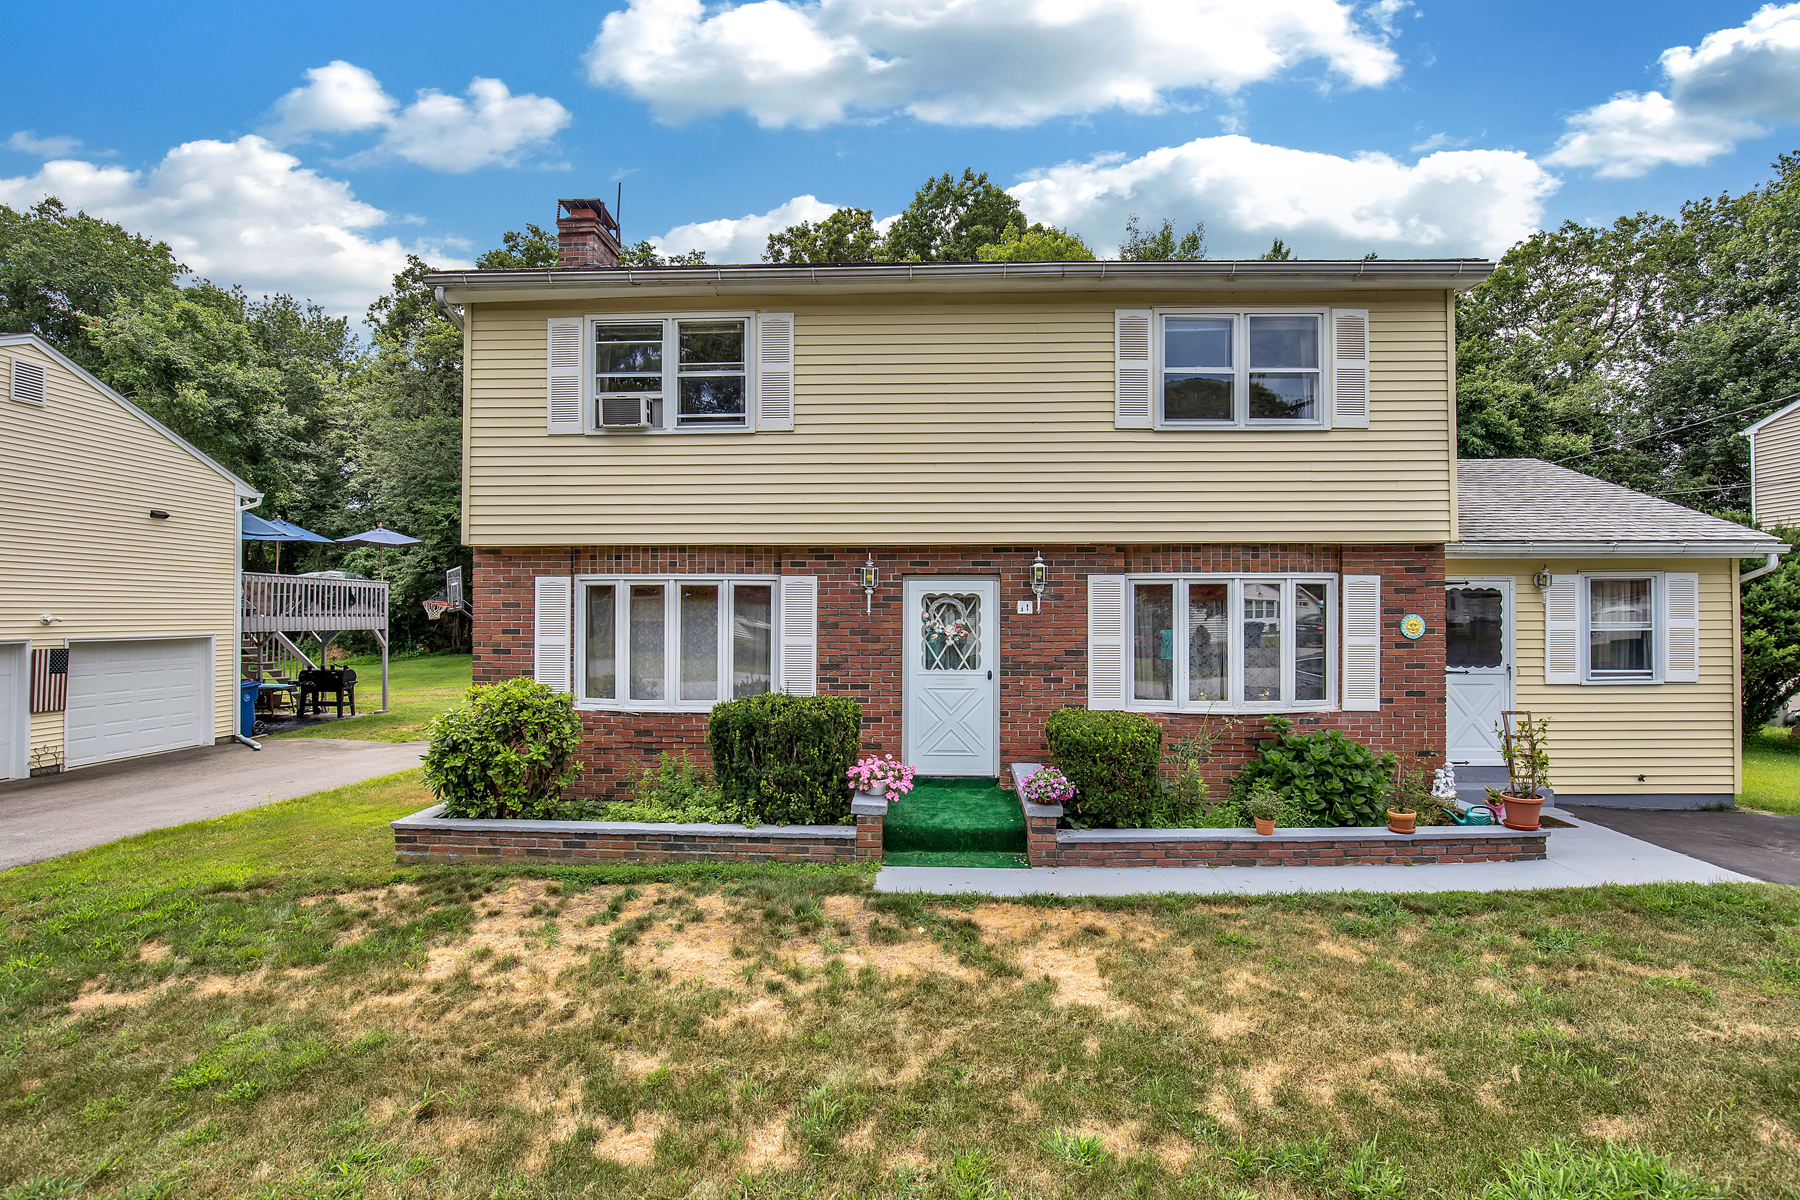 Single Family Homes для того Продажа на Stroll to White Sandy Beach Year-Round! 11 Prospect Street, Old Lyme, Коннектикут 06371 Соединенные Штаты